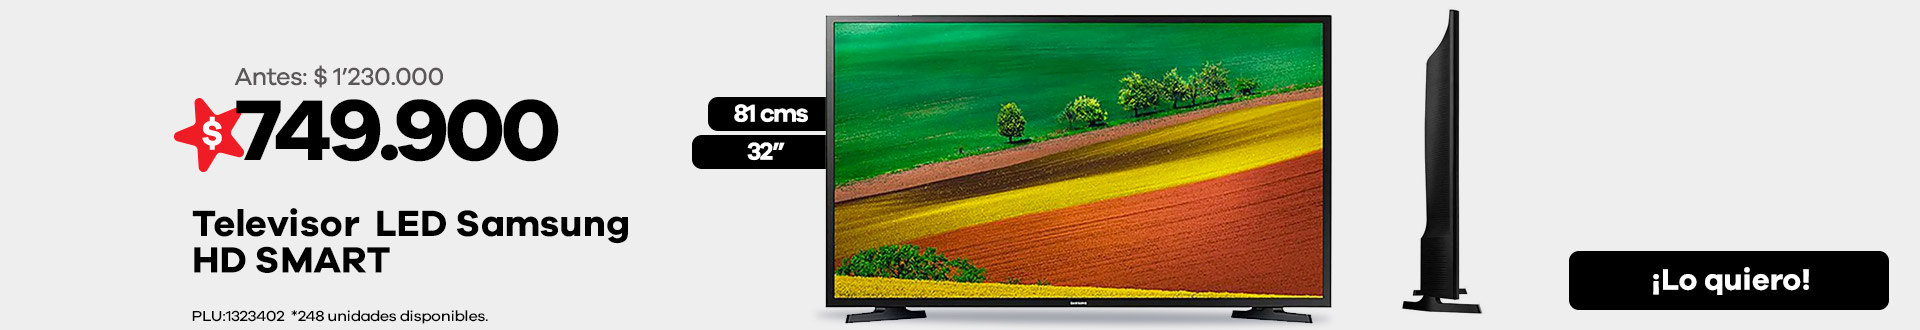 televisor-led-samsung-32-pulgadas-hd-smart-tv-serie-4